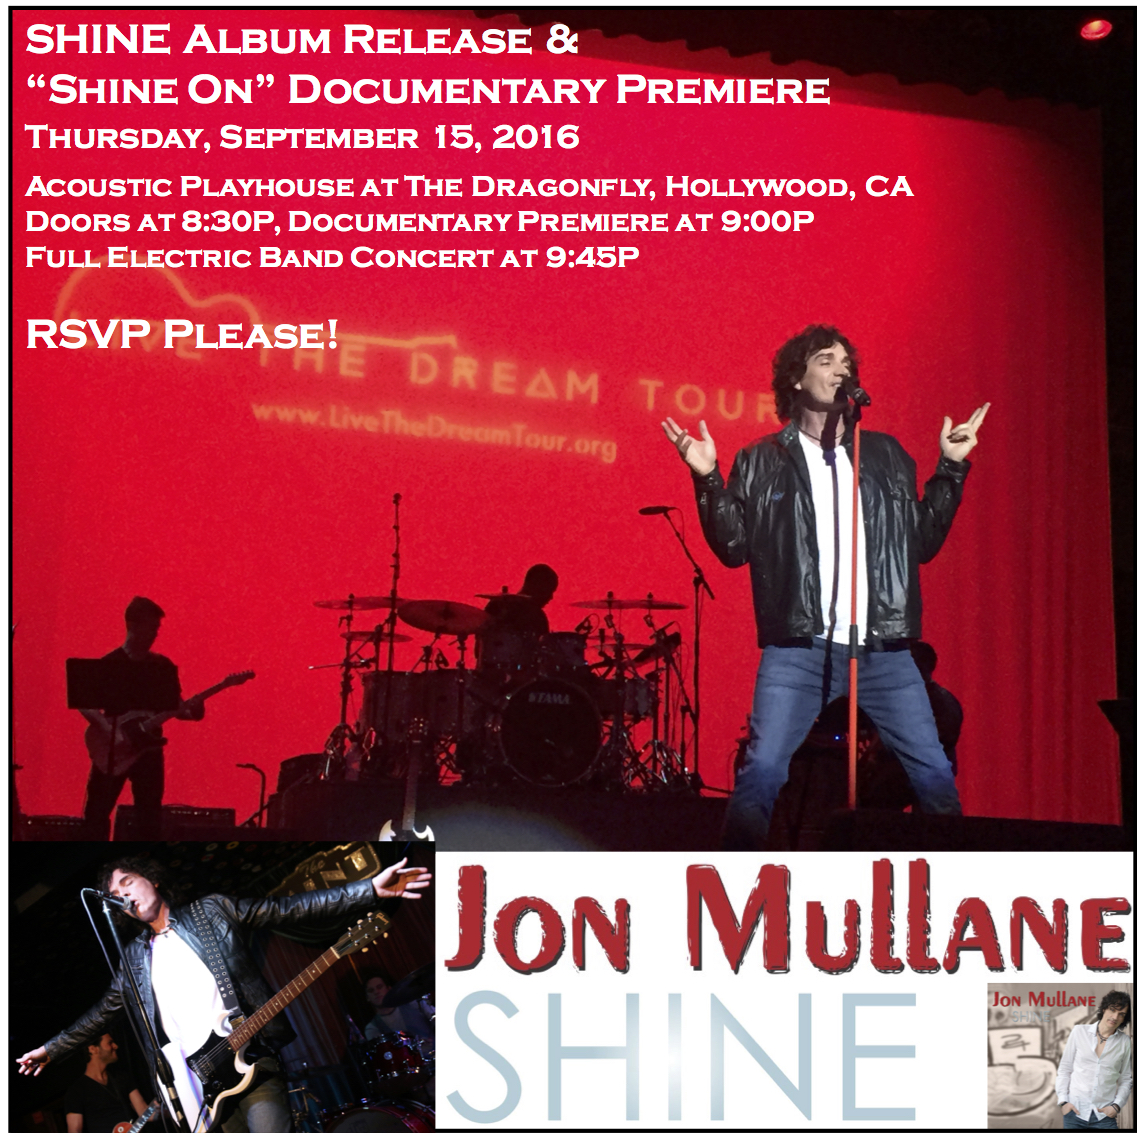 Jon Mullane - Shine On Documentary